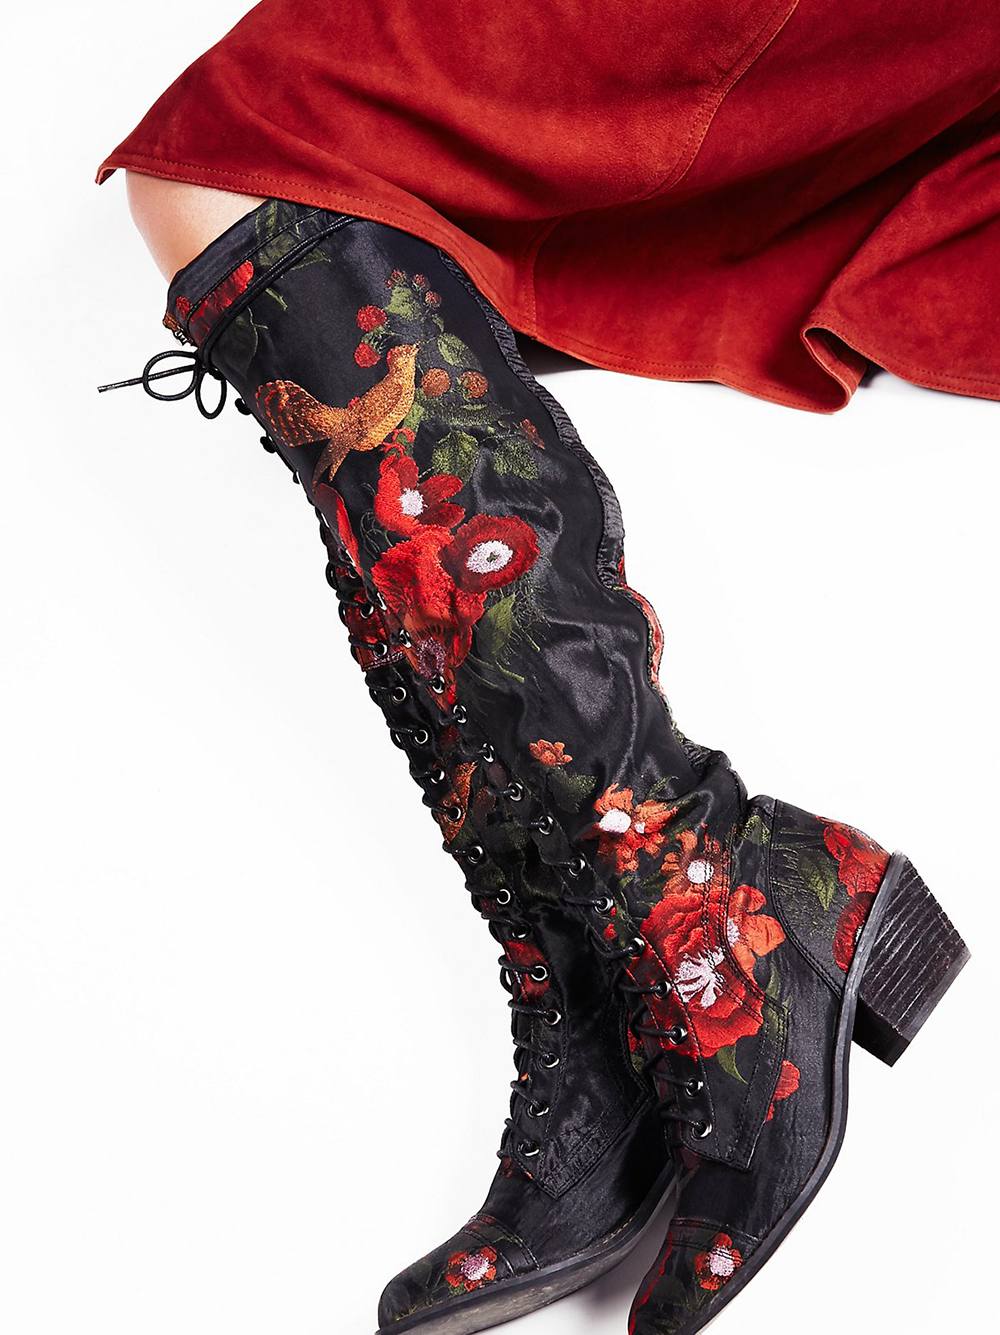 Jeffrey Campbell Floral Joe Lace Up Boot - Statement shoes